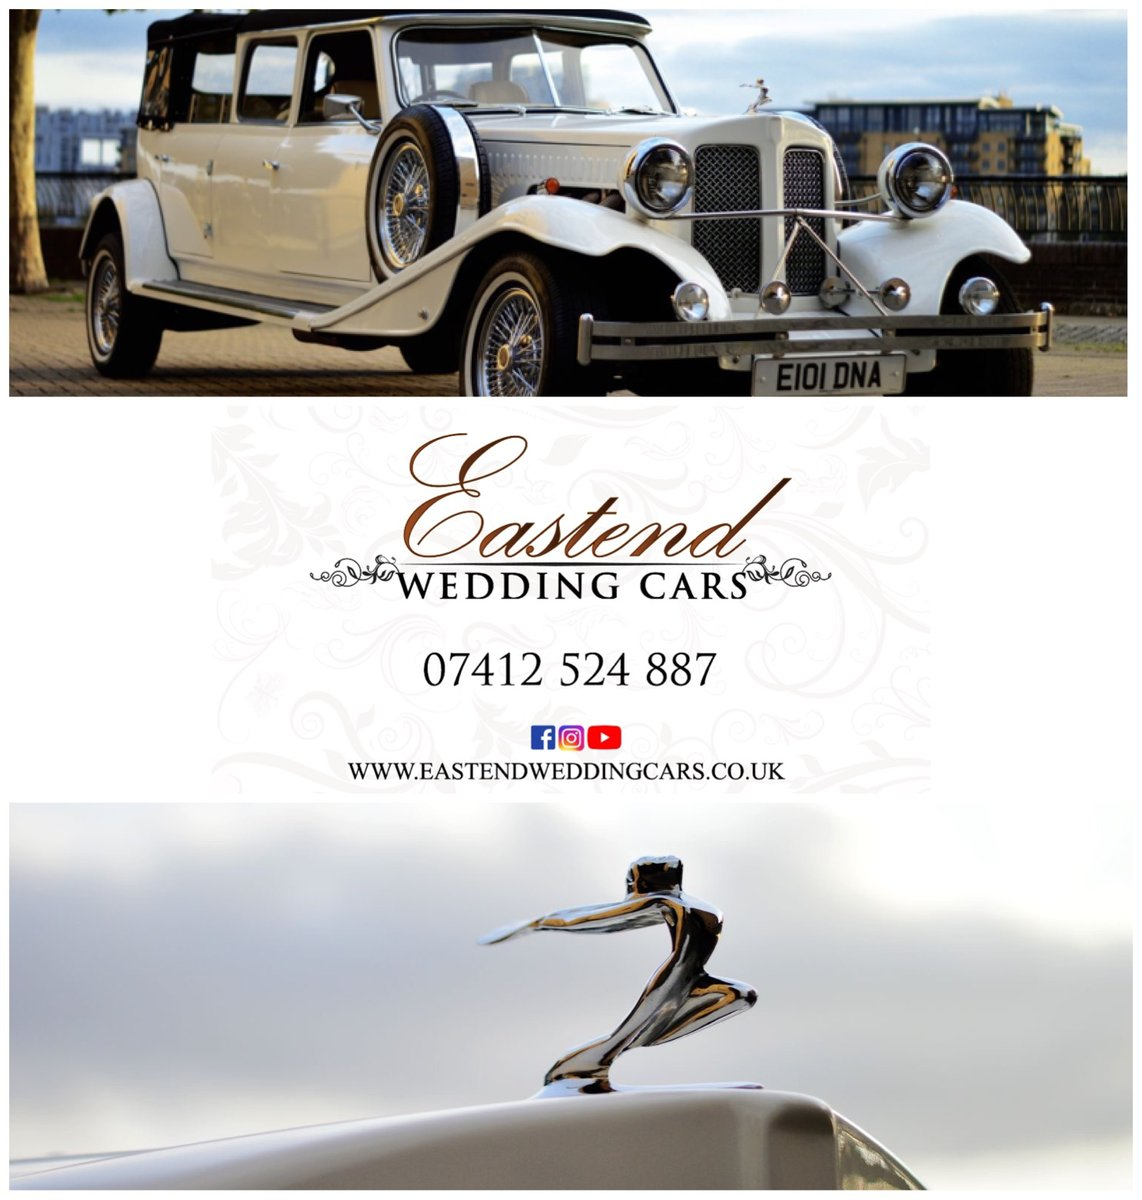 2018 Vintage wedding Car hire For Hire (picture 1 of 6)